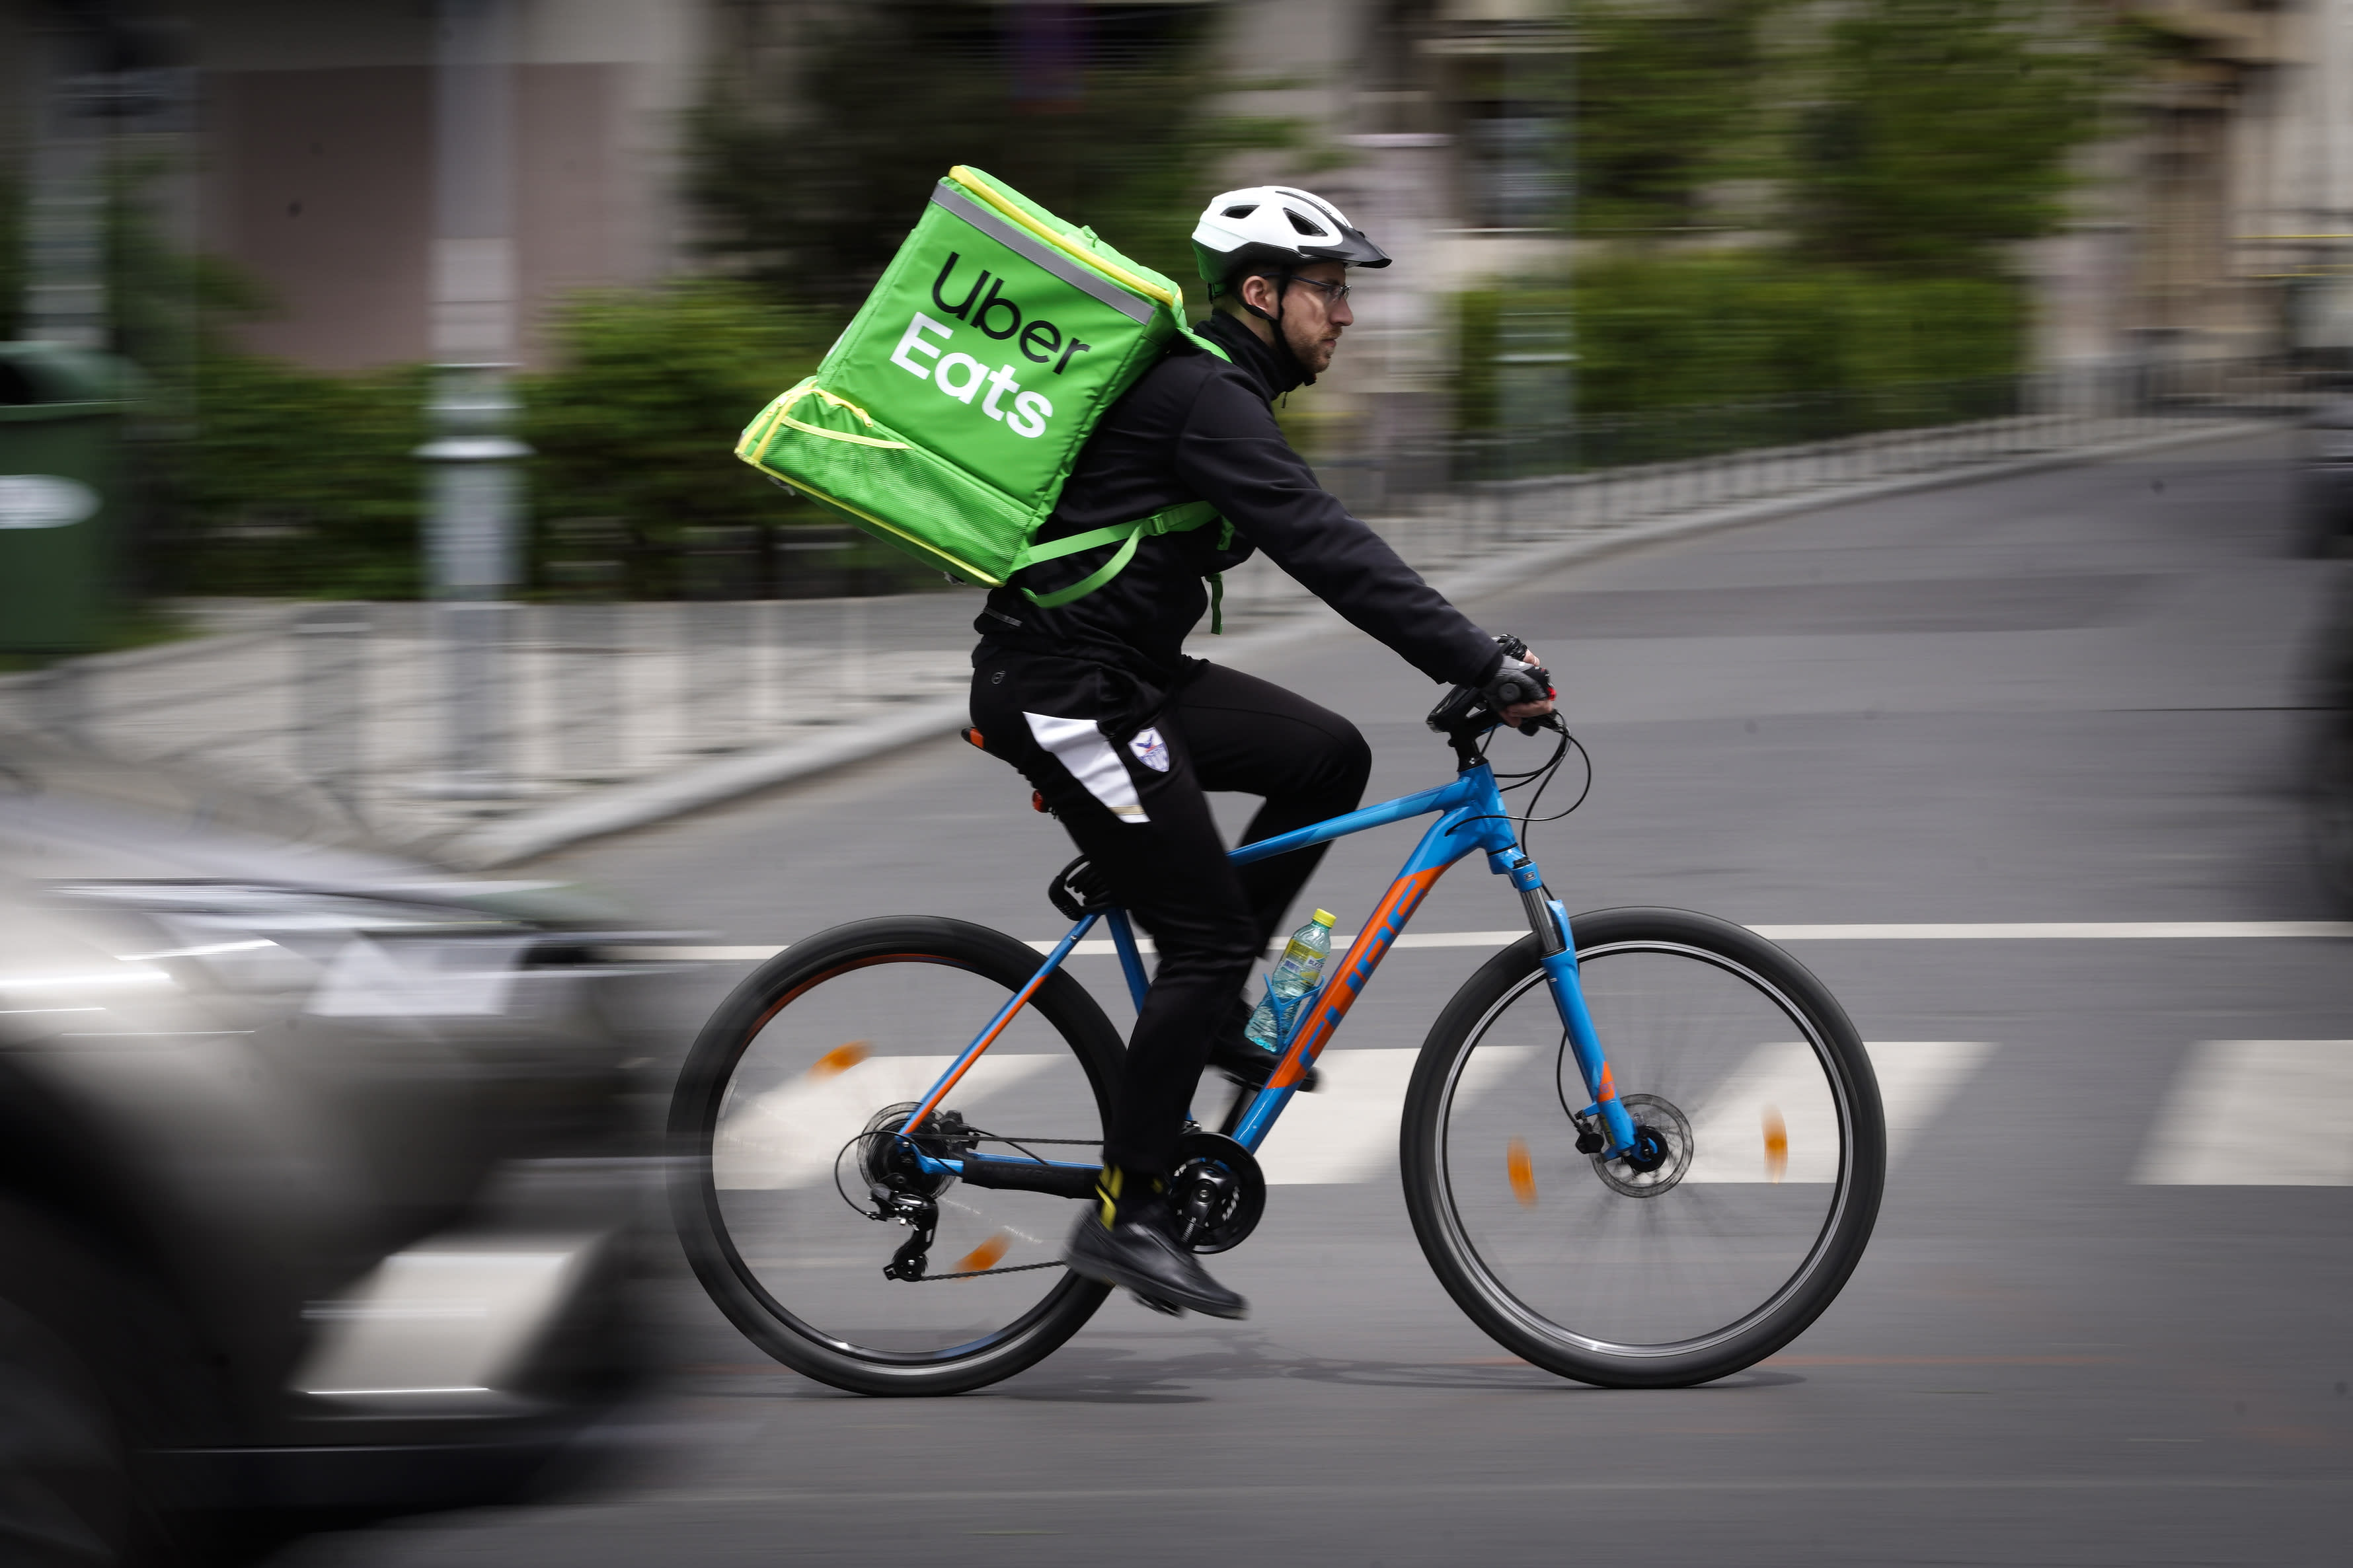 Uber is taking a page from Amazon Prime